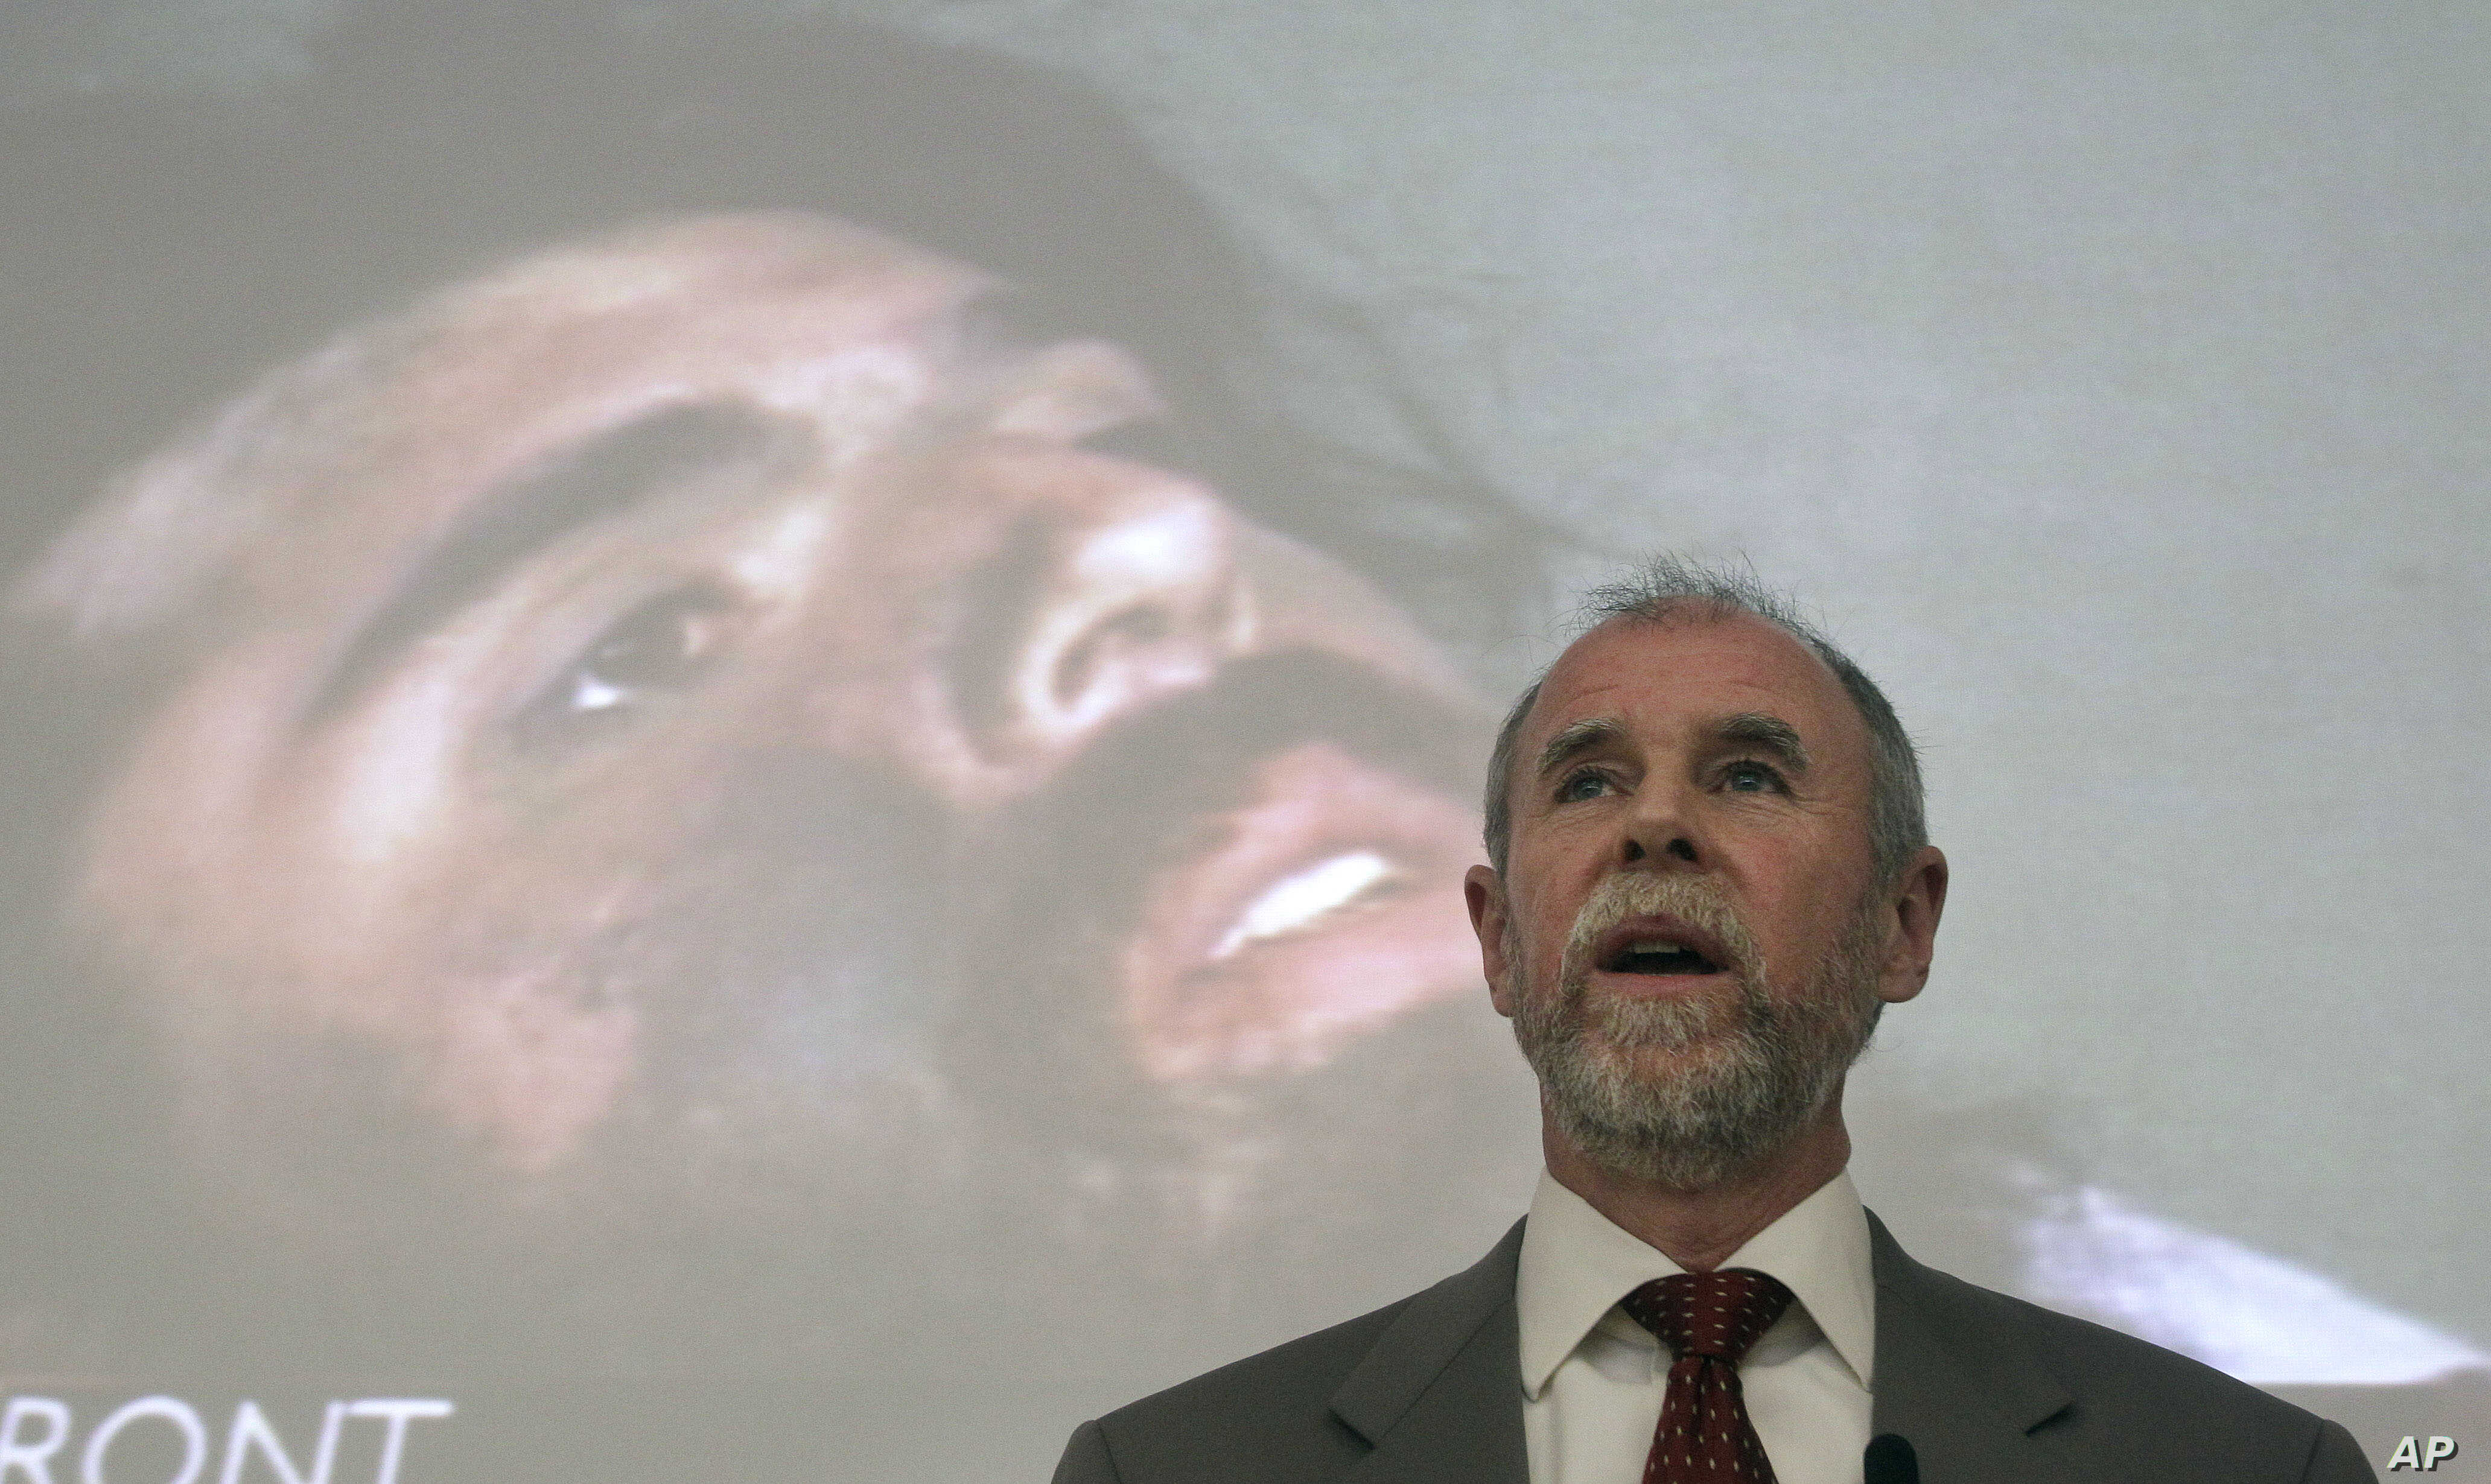 Frank Lindh is shown speaking to law students in front of a projected image of his son, John Walker Lindh, at the University of San Francisco in San Francisco, Feb. 16, 2011.